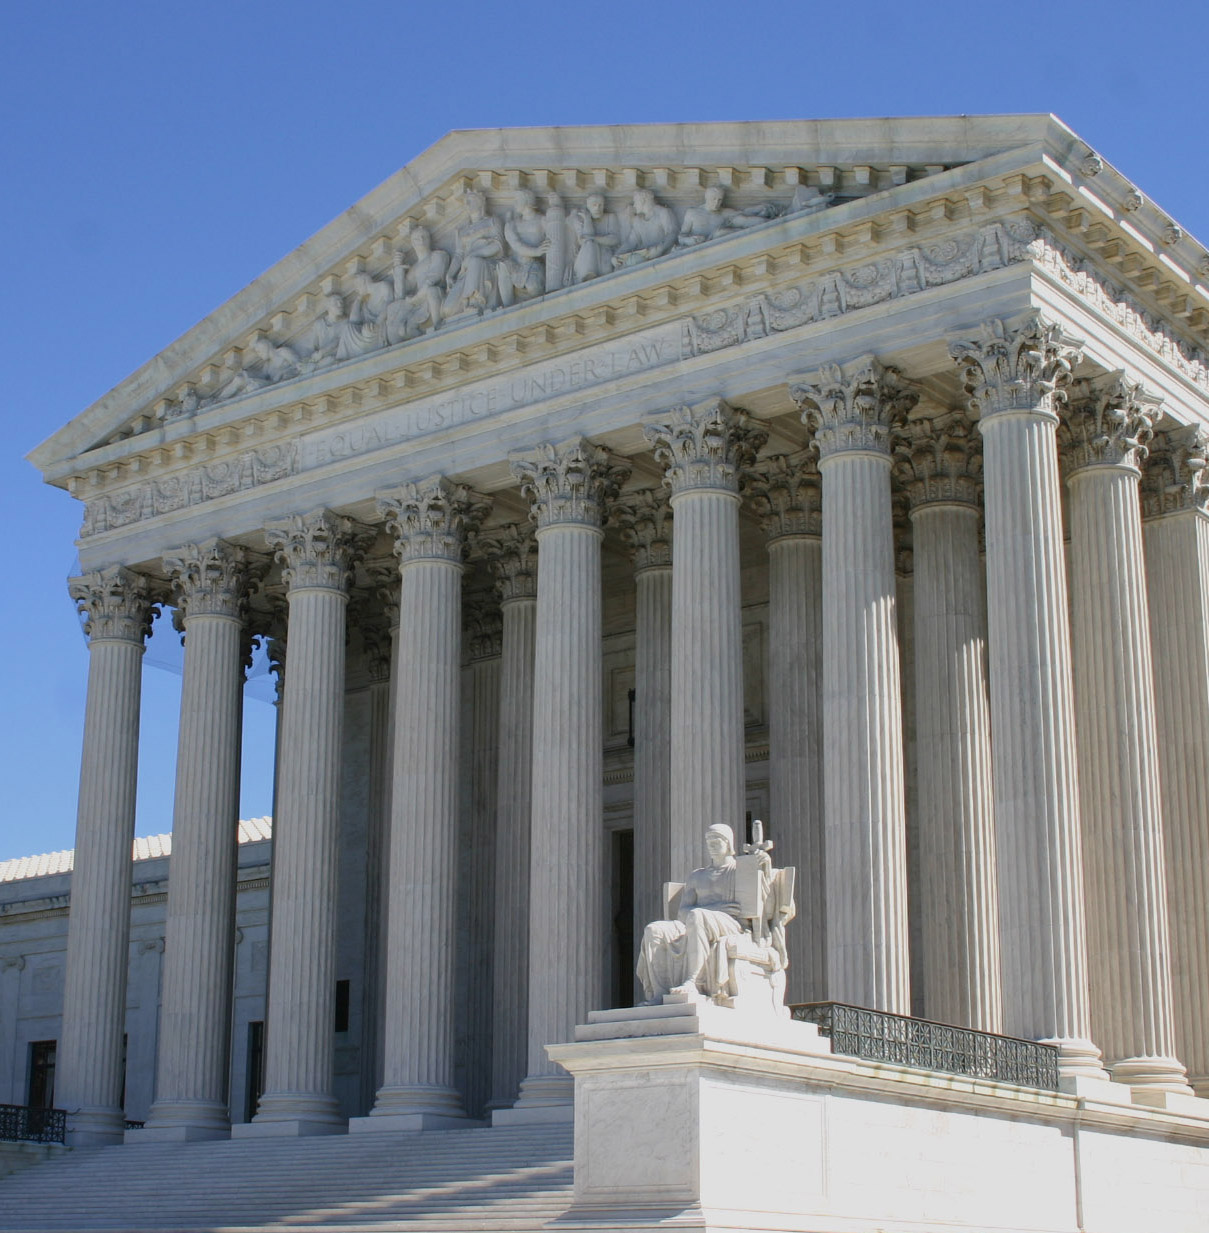 US Supreme Court - picture by dbking on Flickr - free licencse